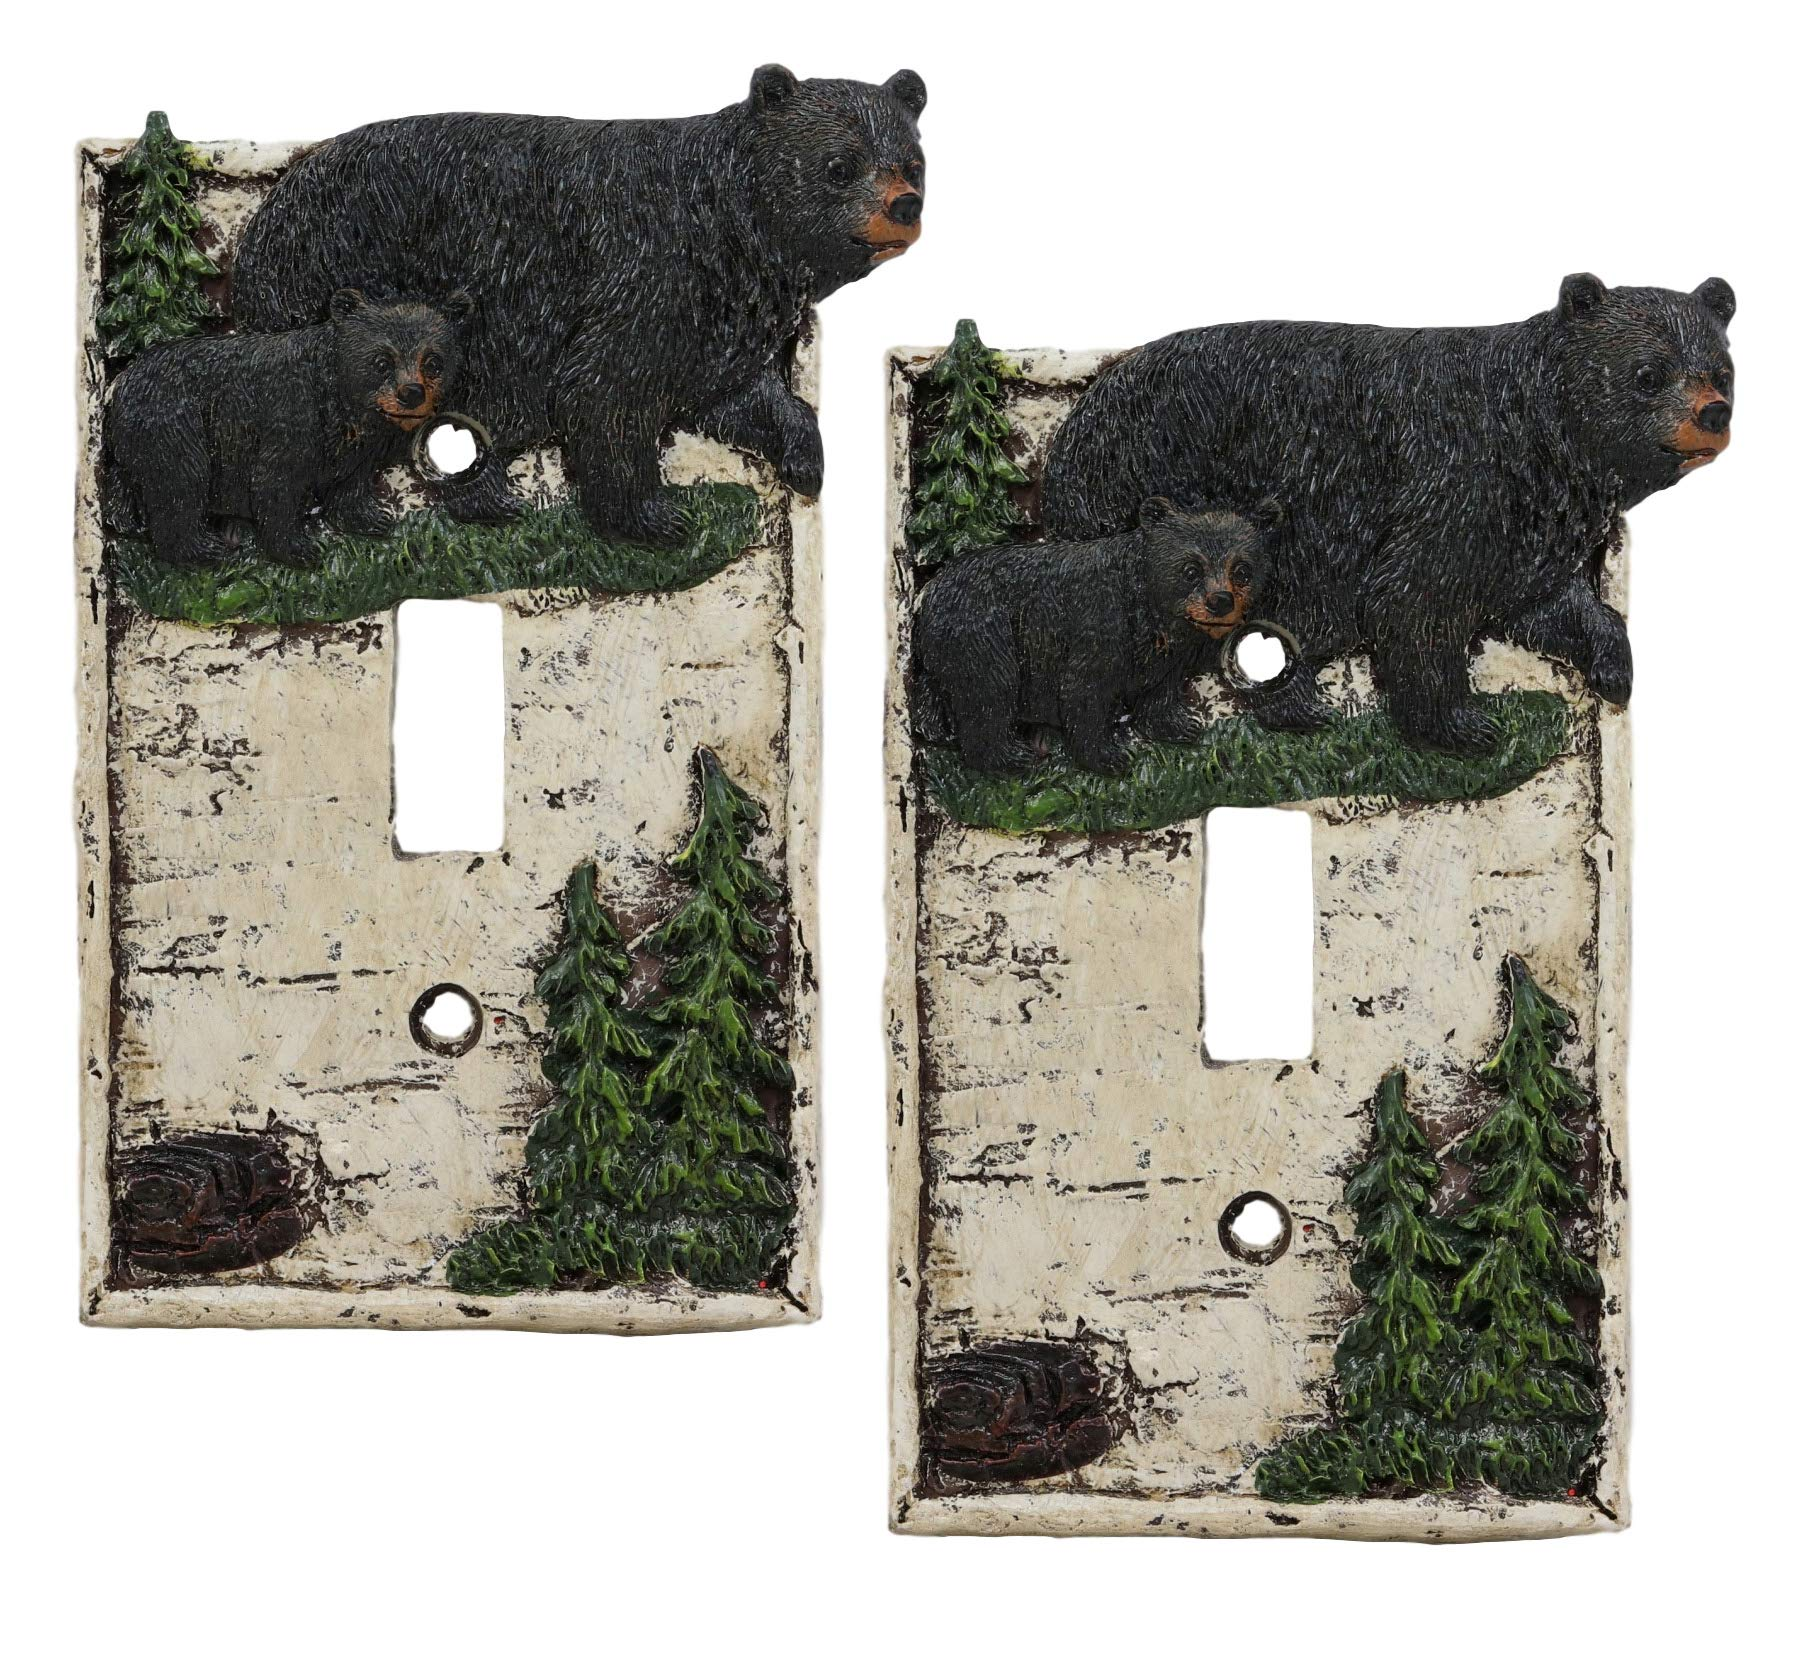 Ebros Set of 2 Novelty Woodland Rustic Pine Trees Forest Black Mother Bear with Cub Wall Light Cover Plate Hand Painted Sculpted Resin Home Decor Accessory 2 Piece Pack (Single Toggle Switch) by Ebros Gift